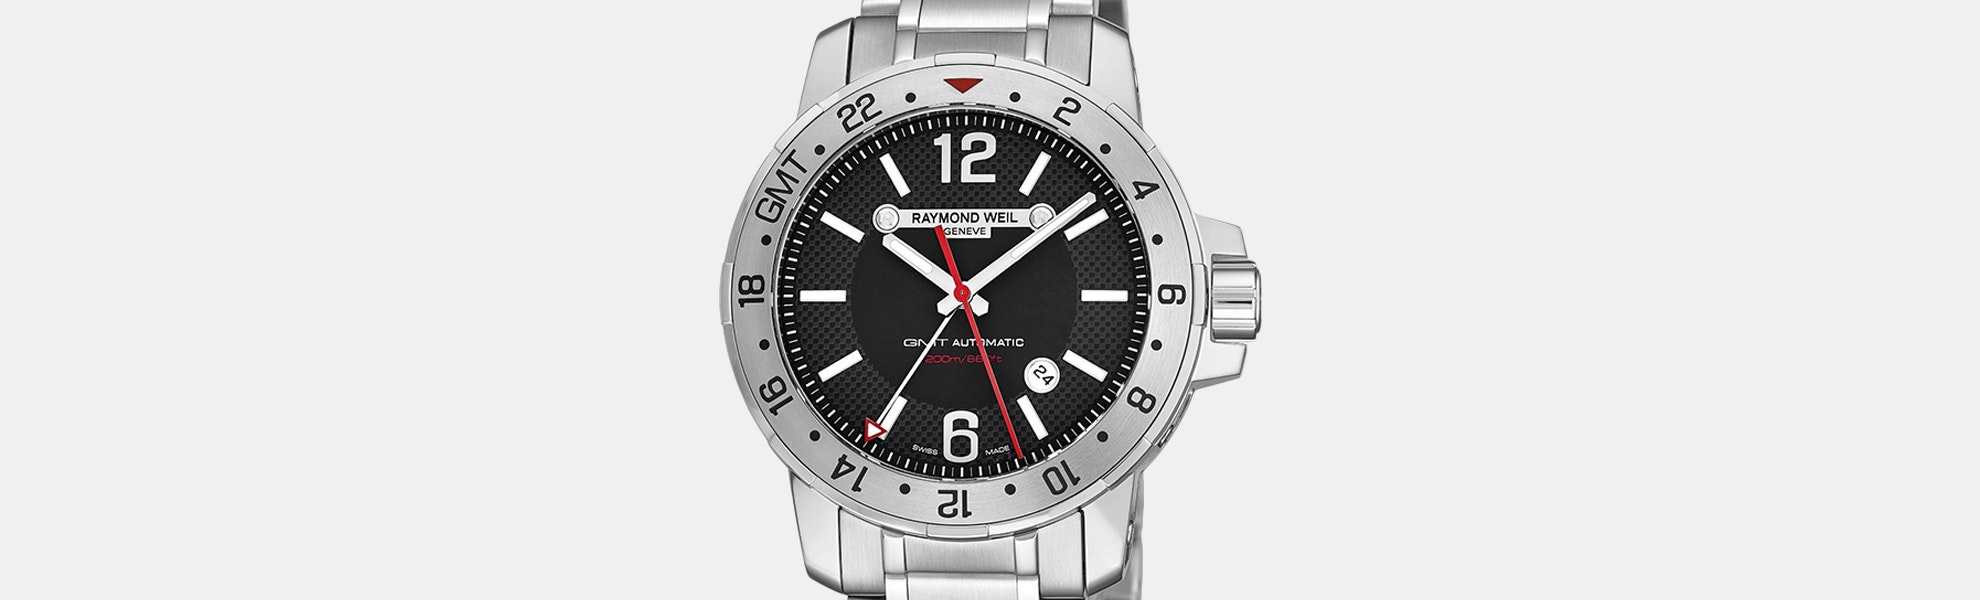 Raymond Weil Nabucco GMT Automatic Watch